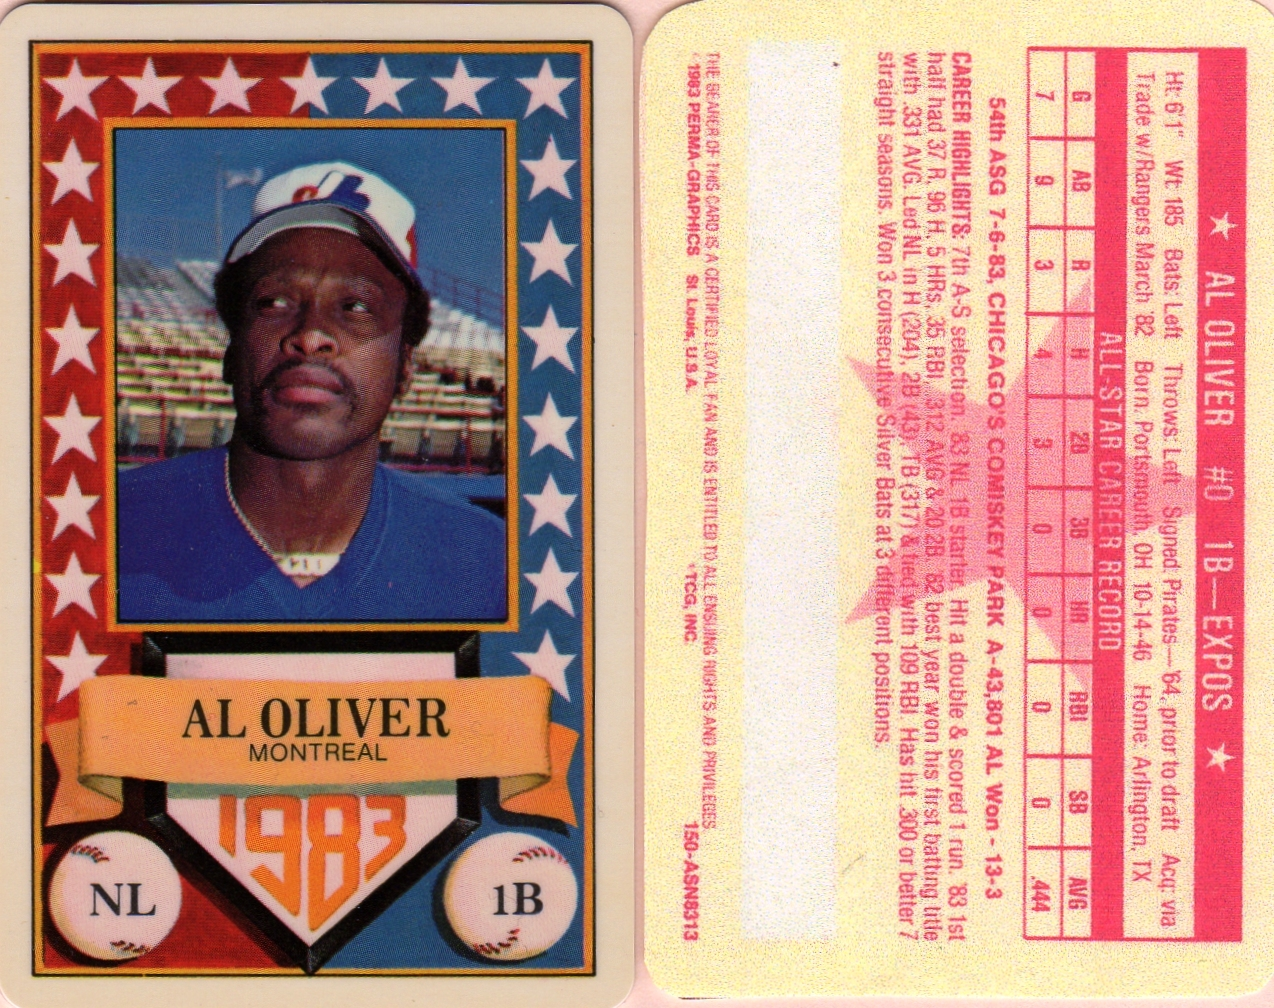 1983 Perma Graphic All-Star Credit Card